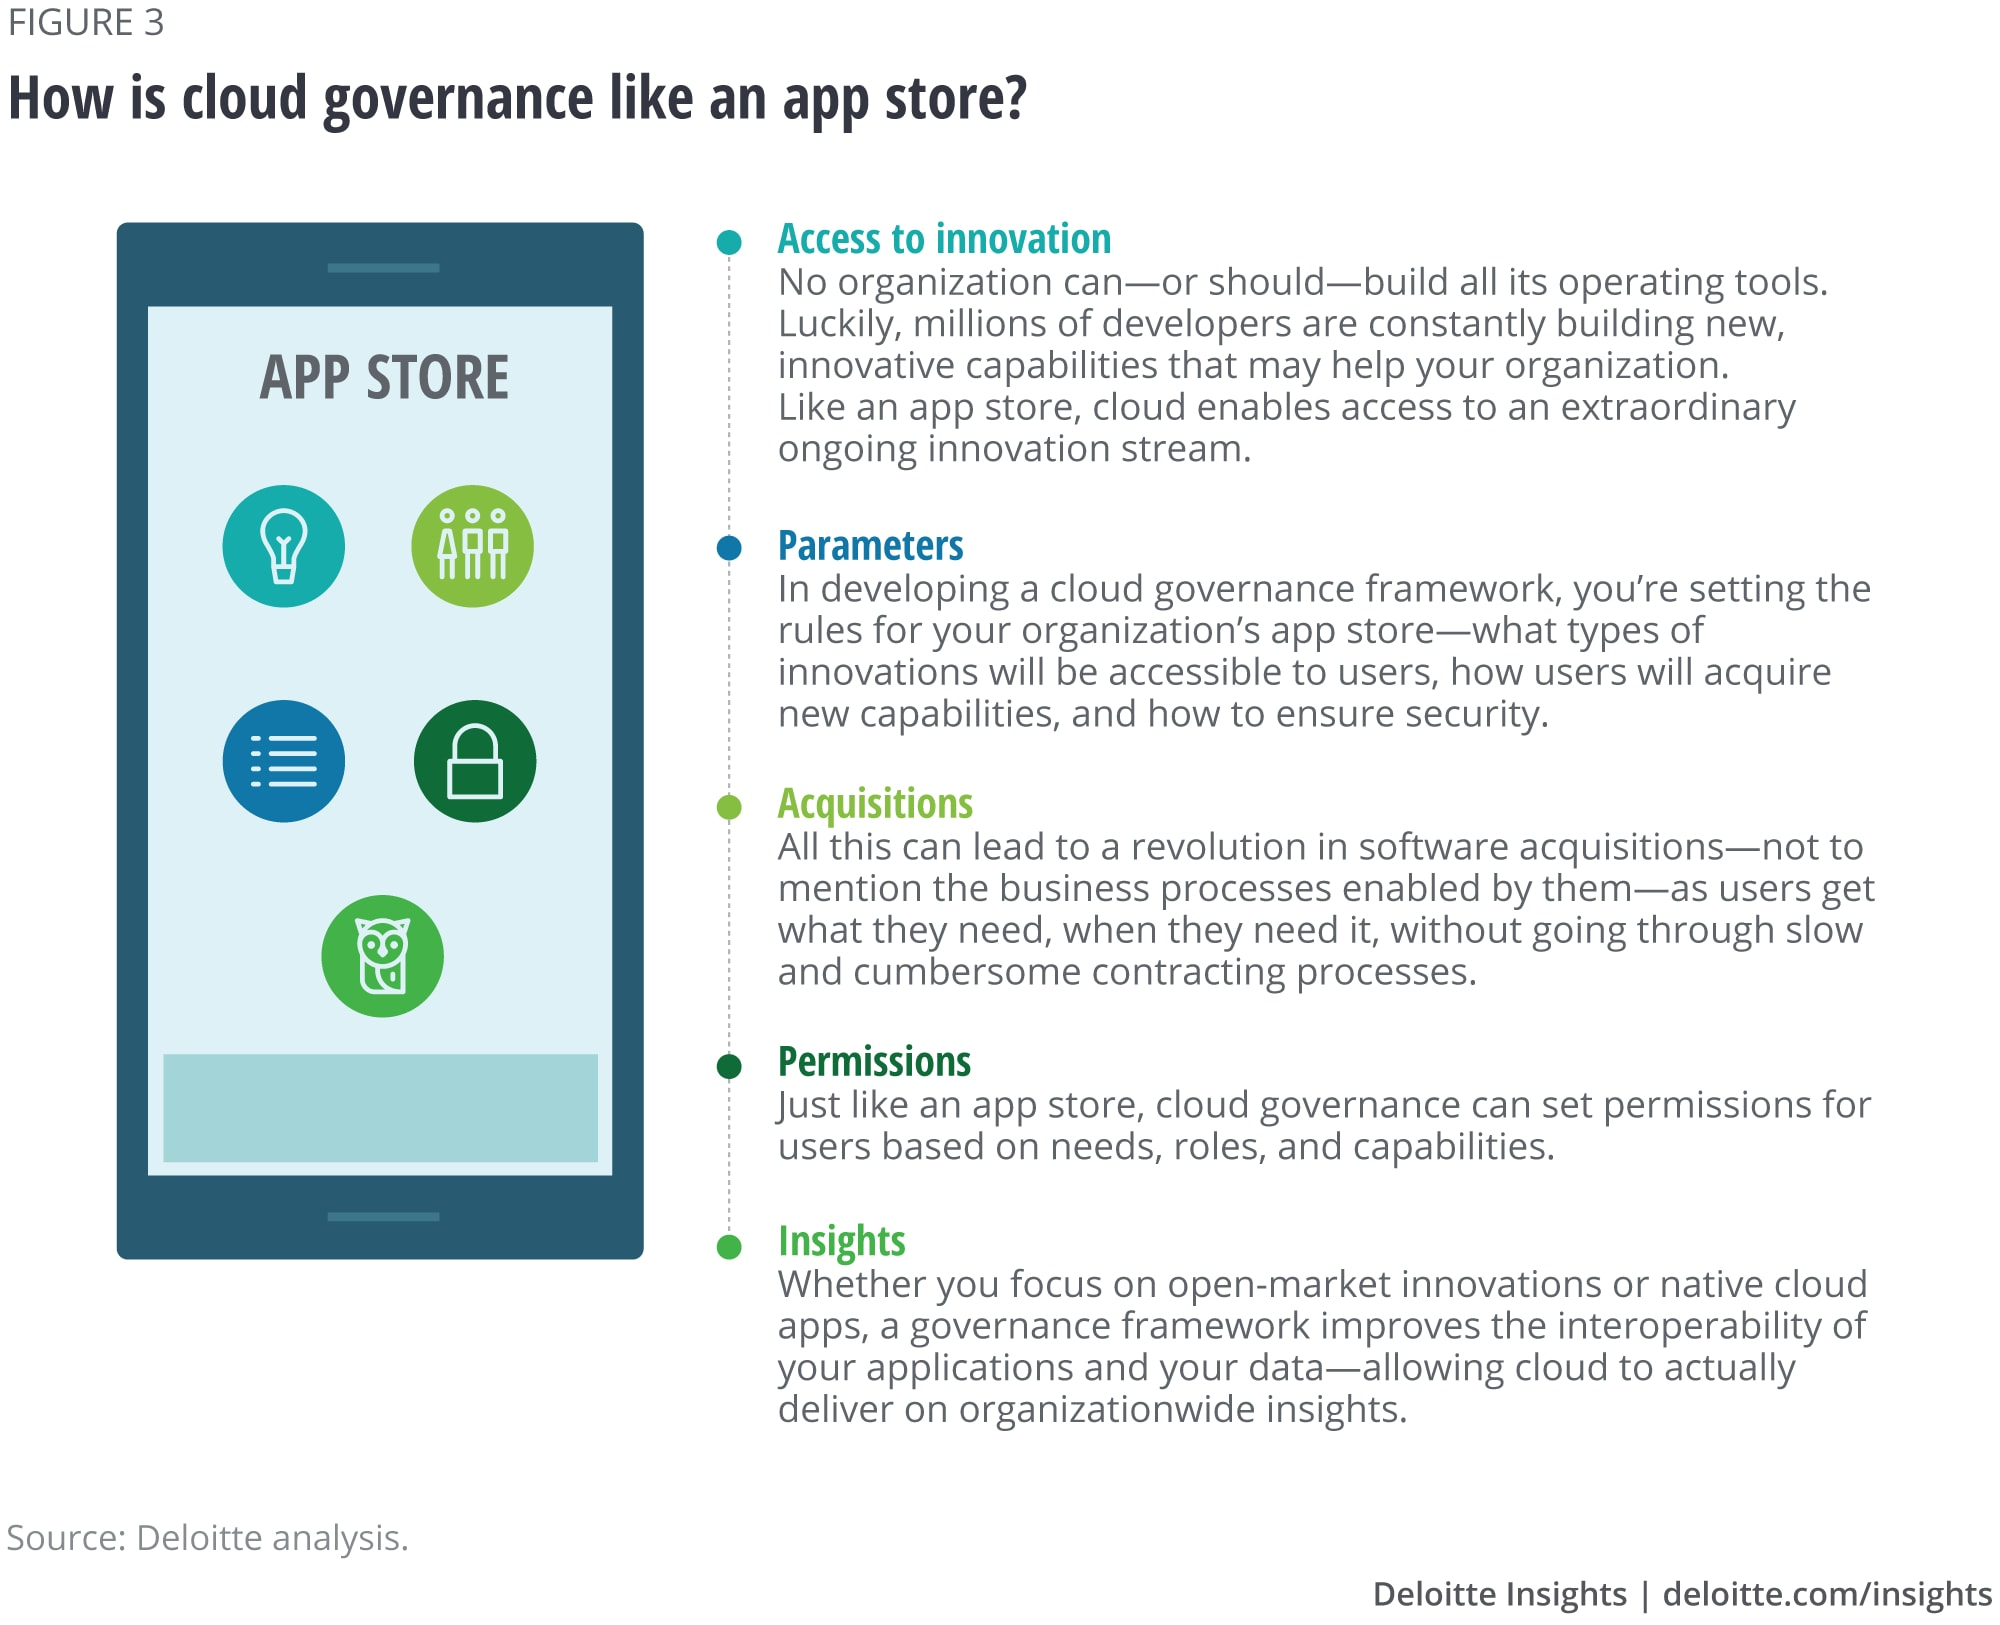 How is cloud governance like an app store?